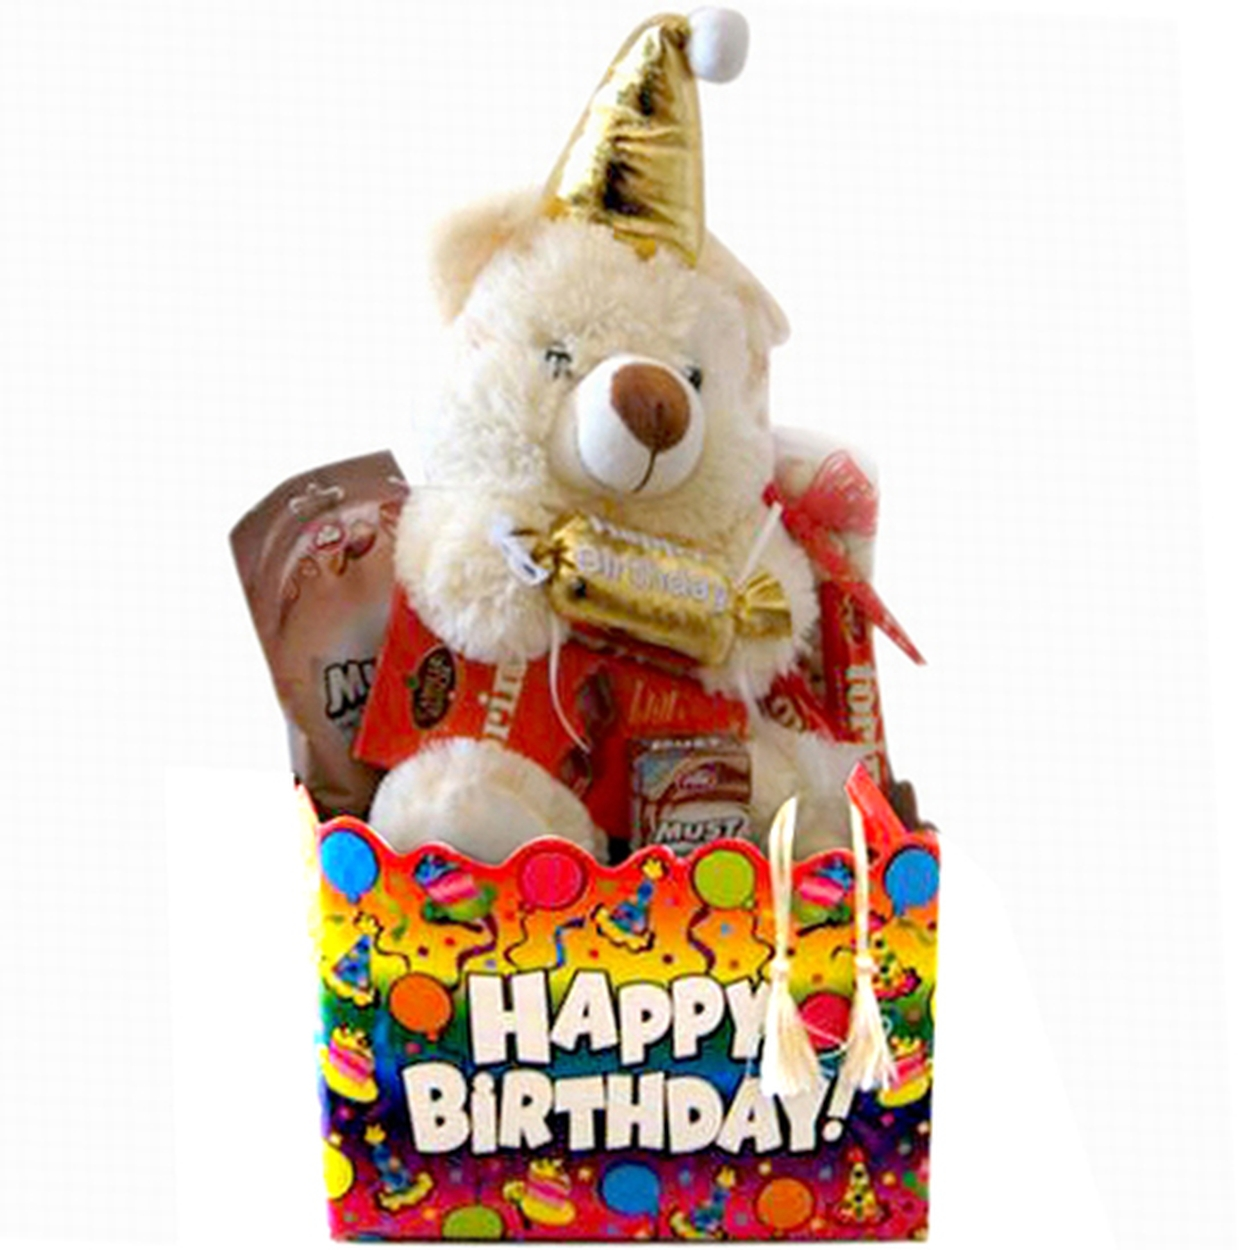 Birthday gifts kosher gift baskets oh nuts happy birthday gift basket negle Image collections